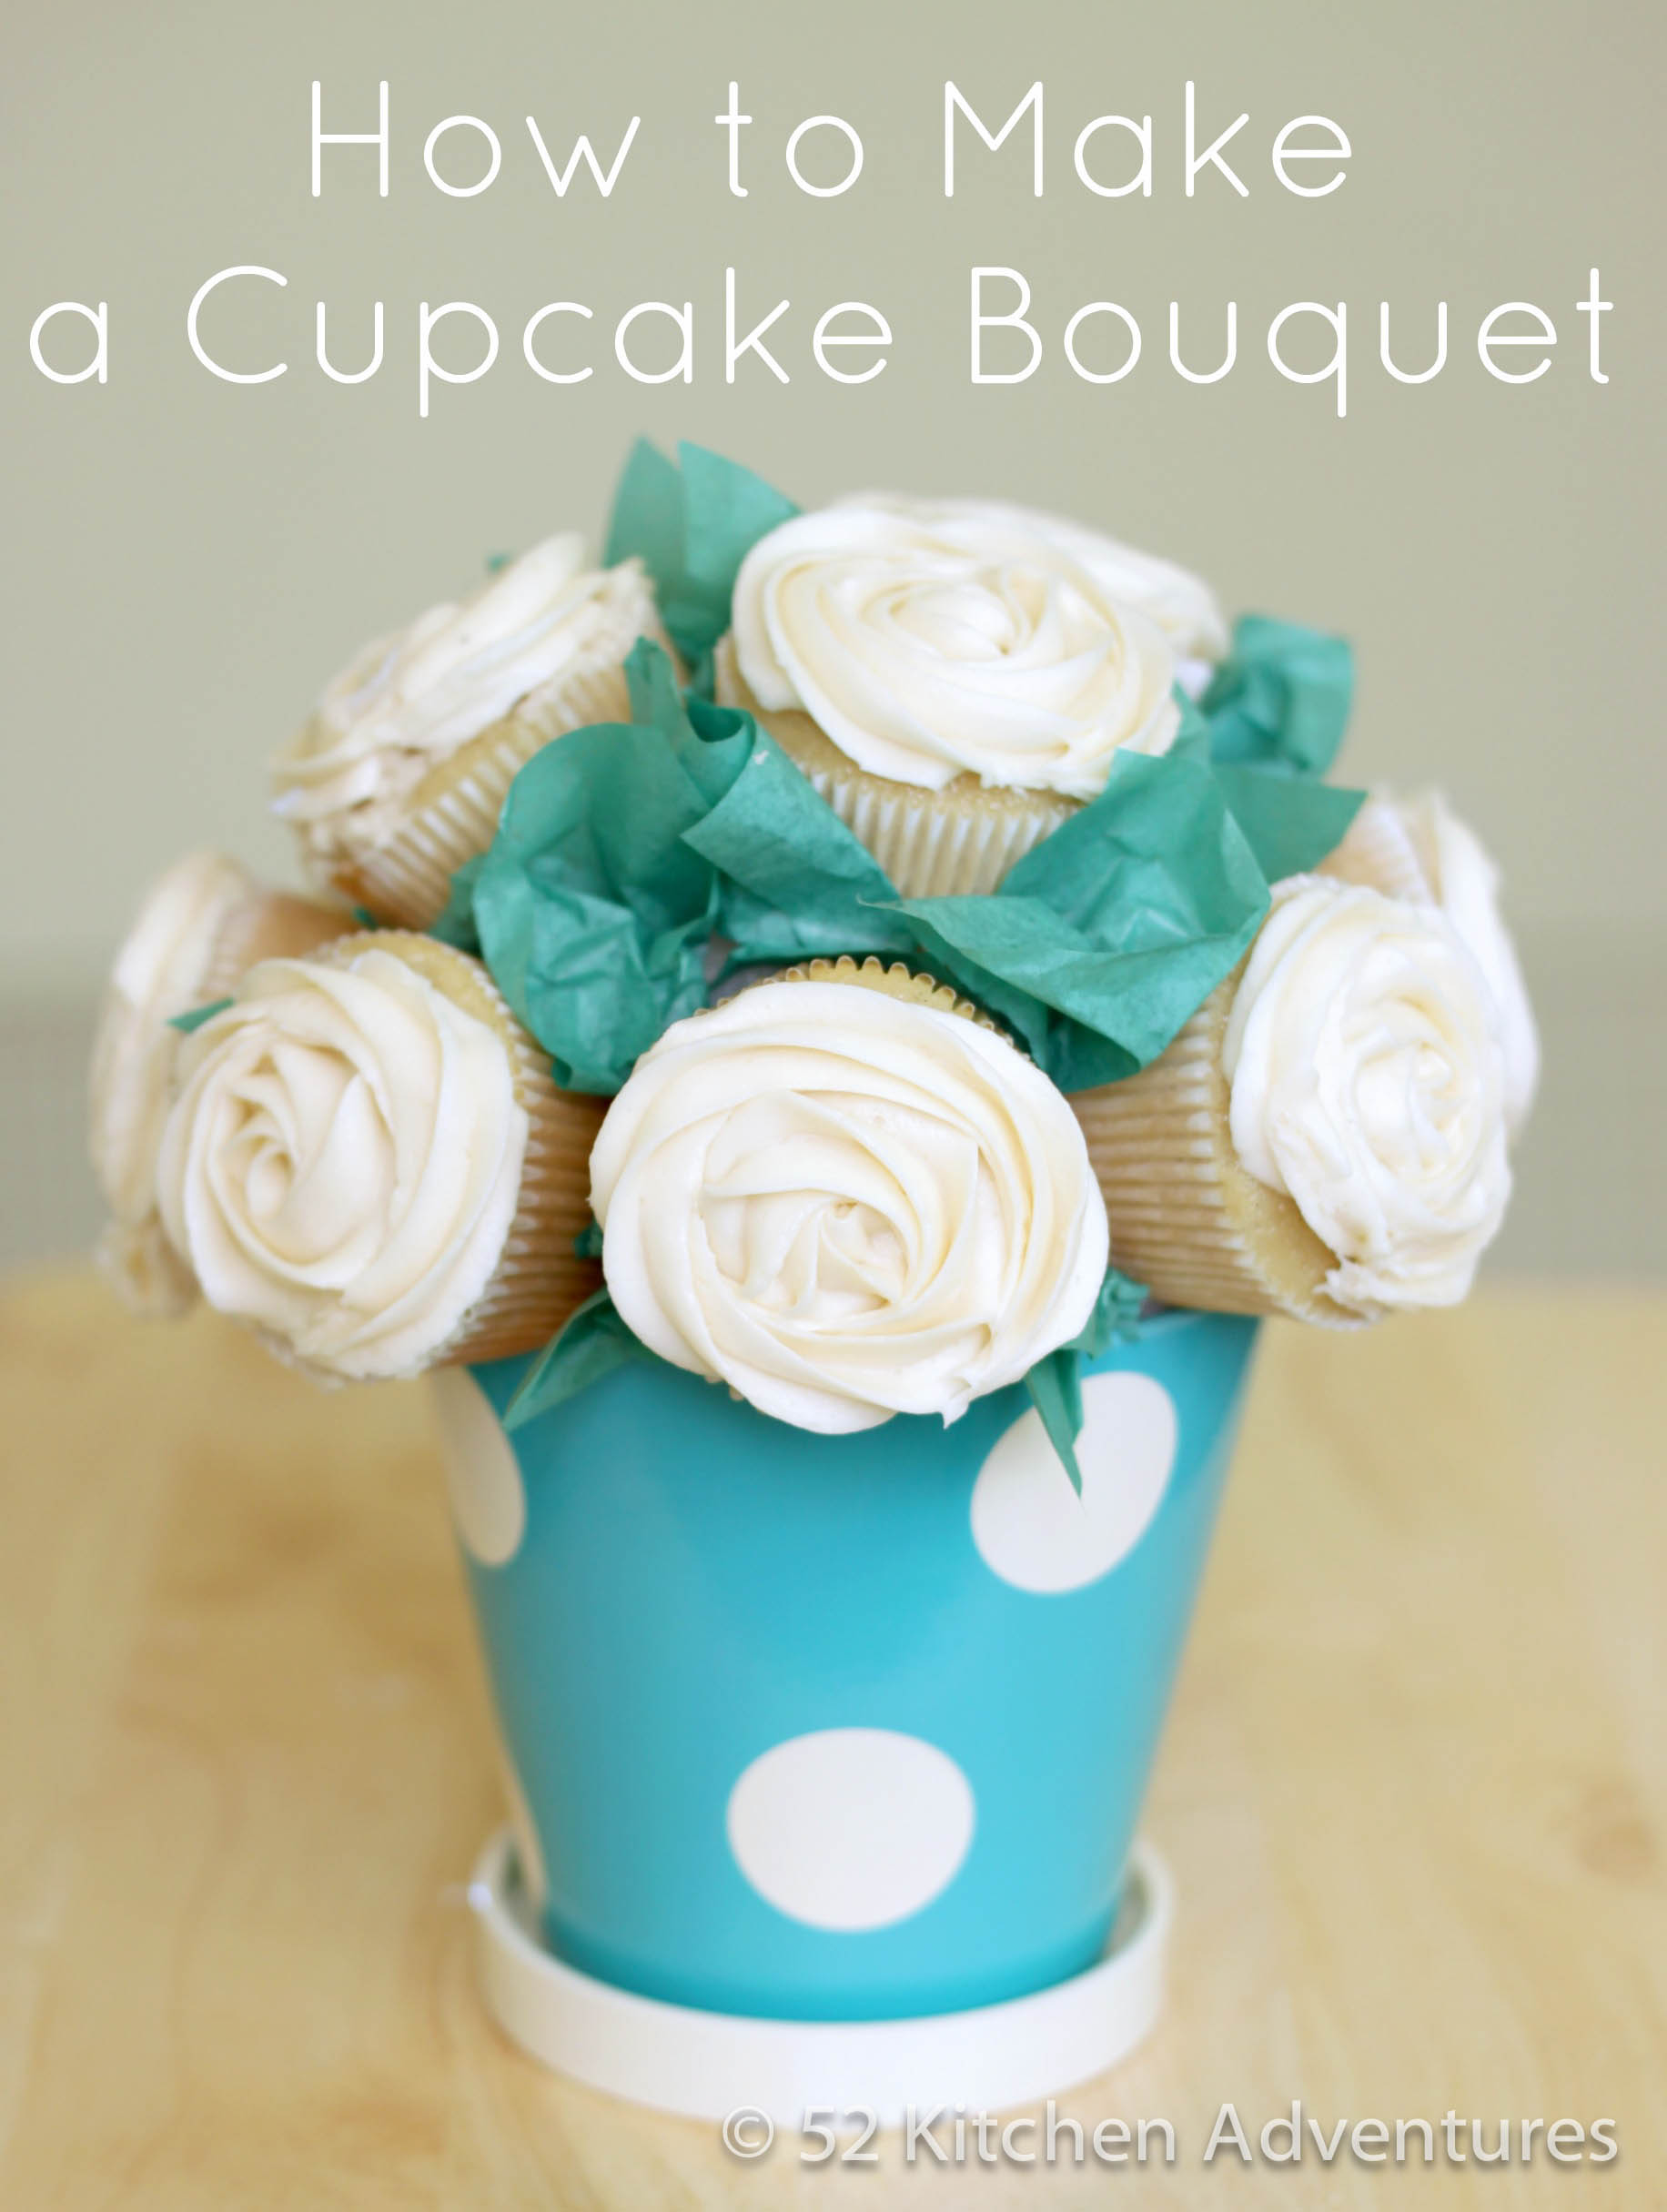 How to make a cupcake bouquet how to make a cupcake bouquet1g izmirmasajfo